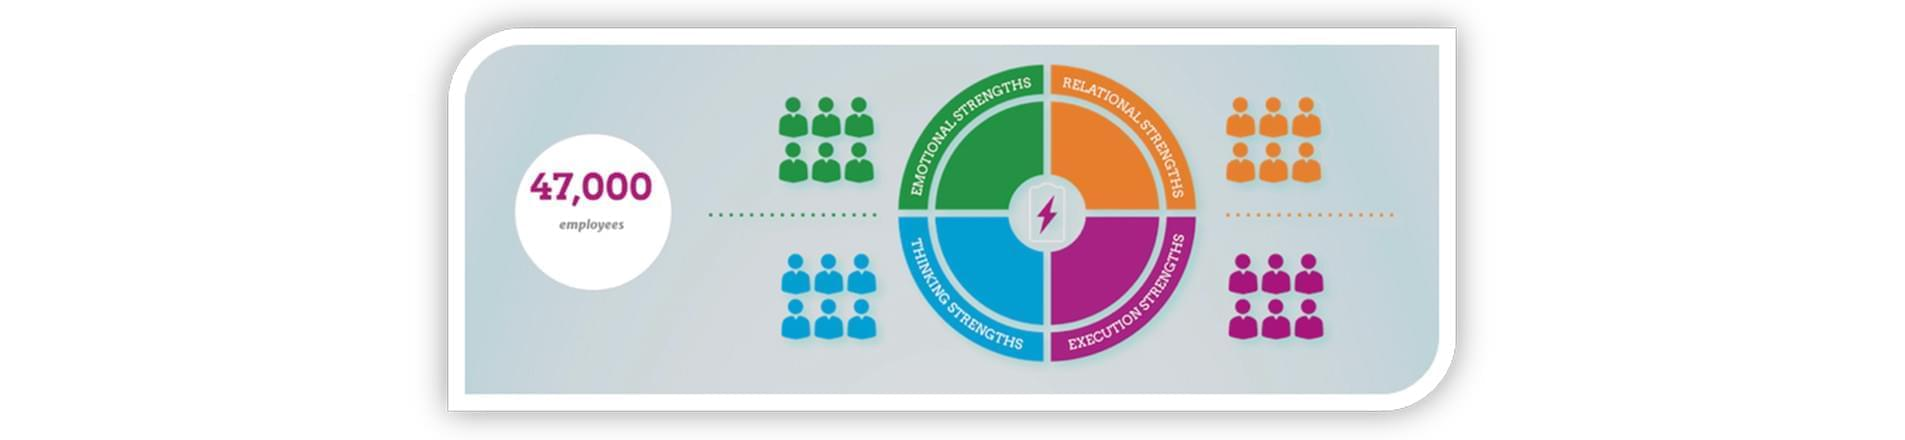 A chart showing emotional strengths, relational strengths, thinking strengths, execution strengths within a workplace